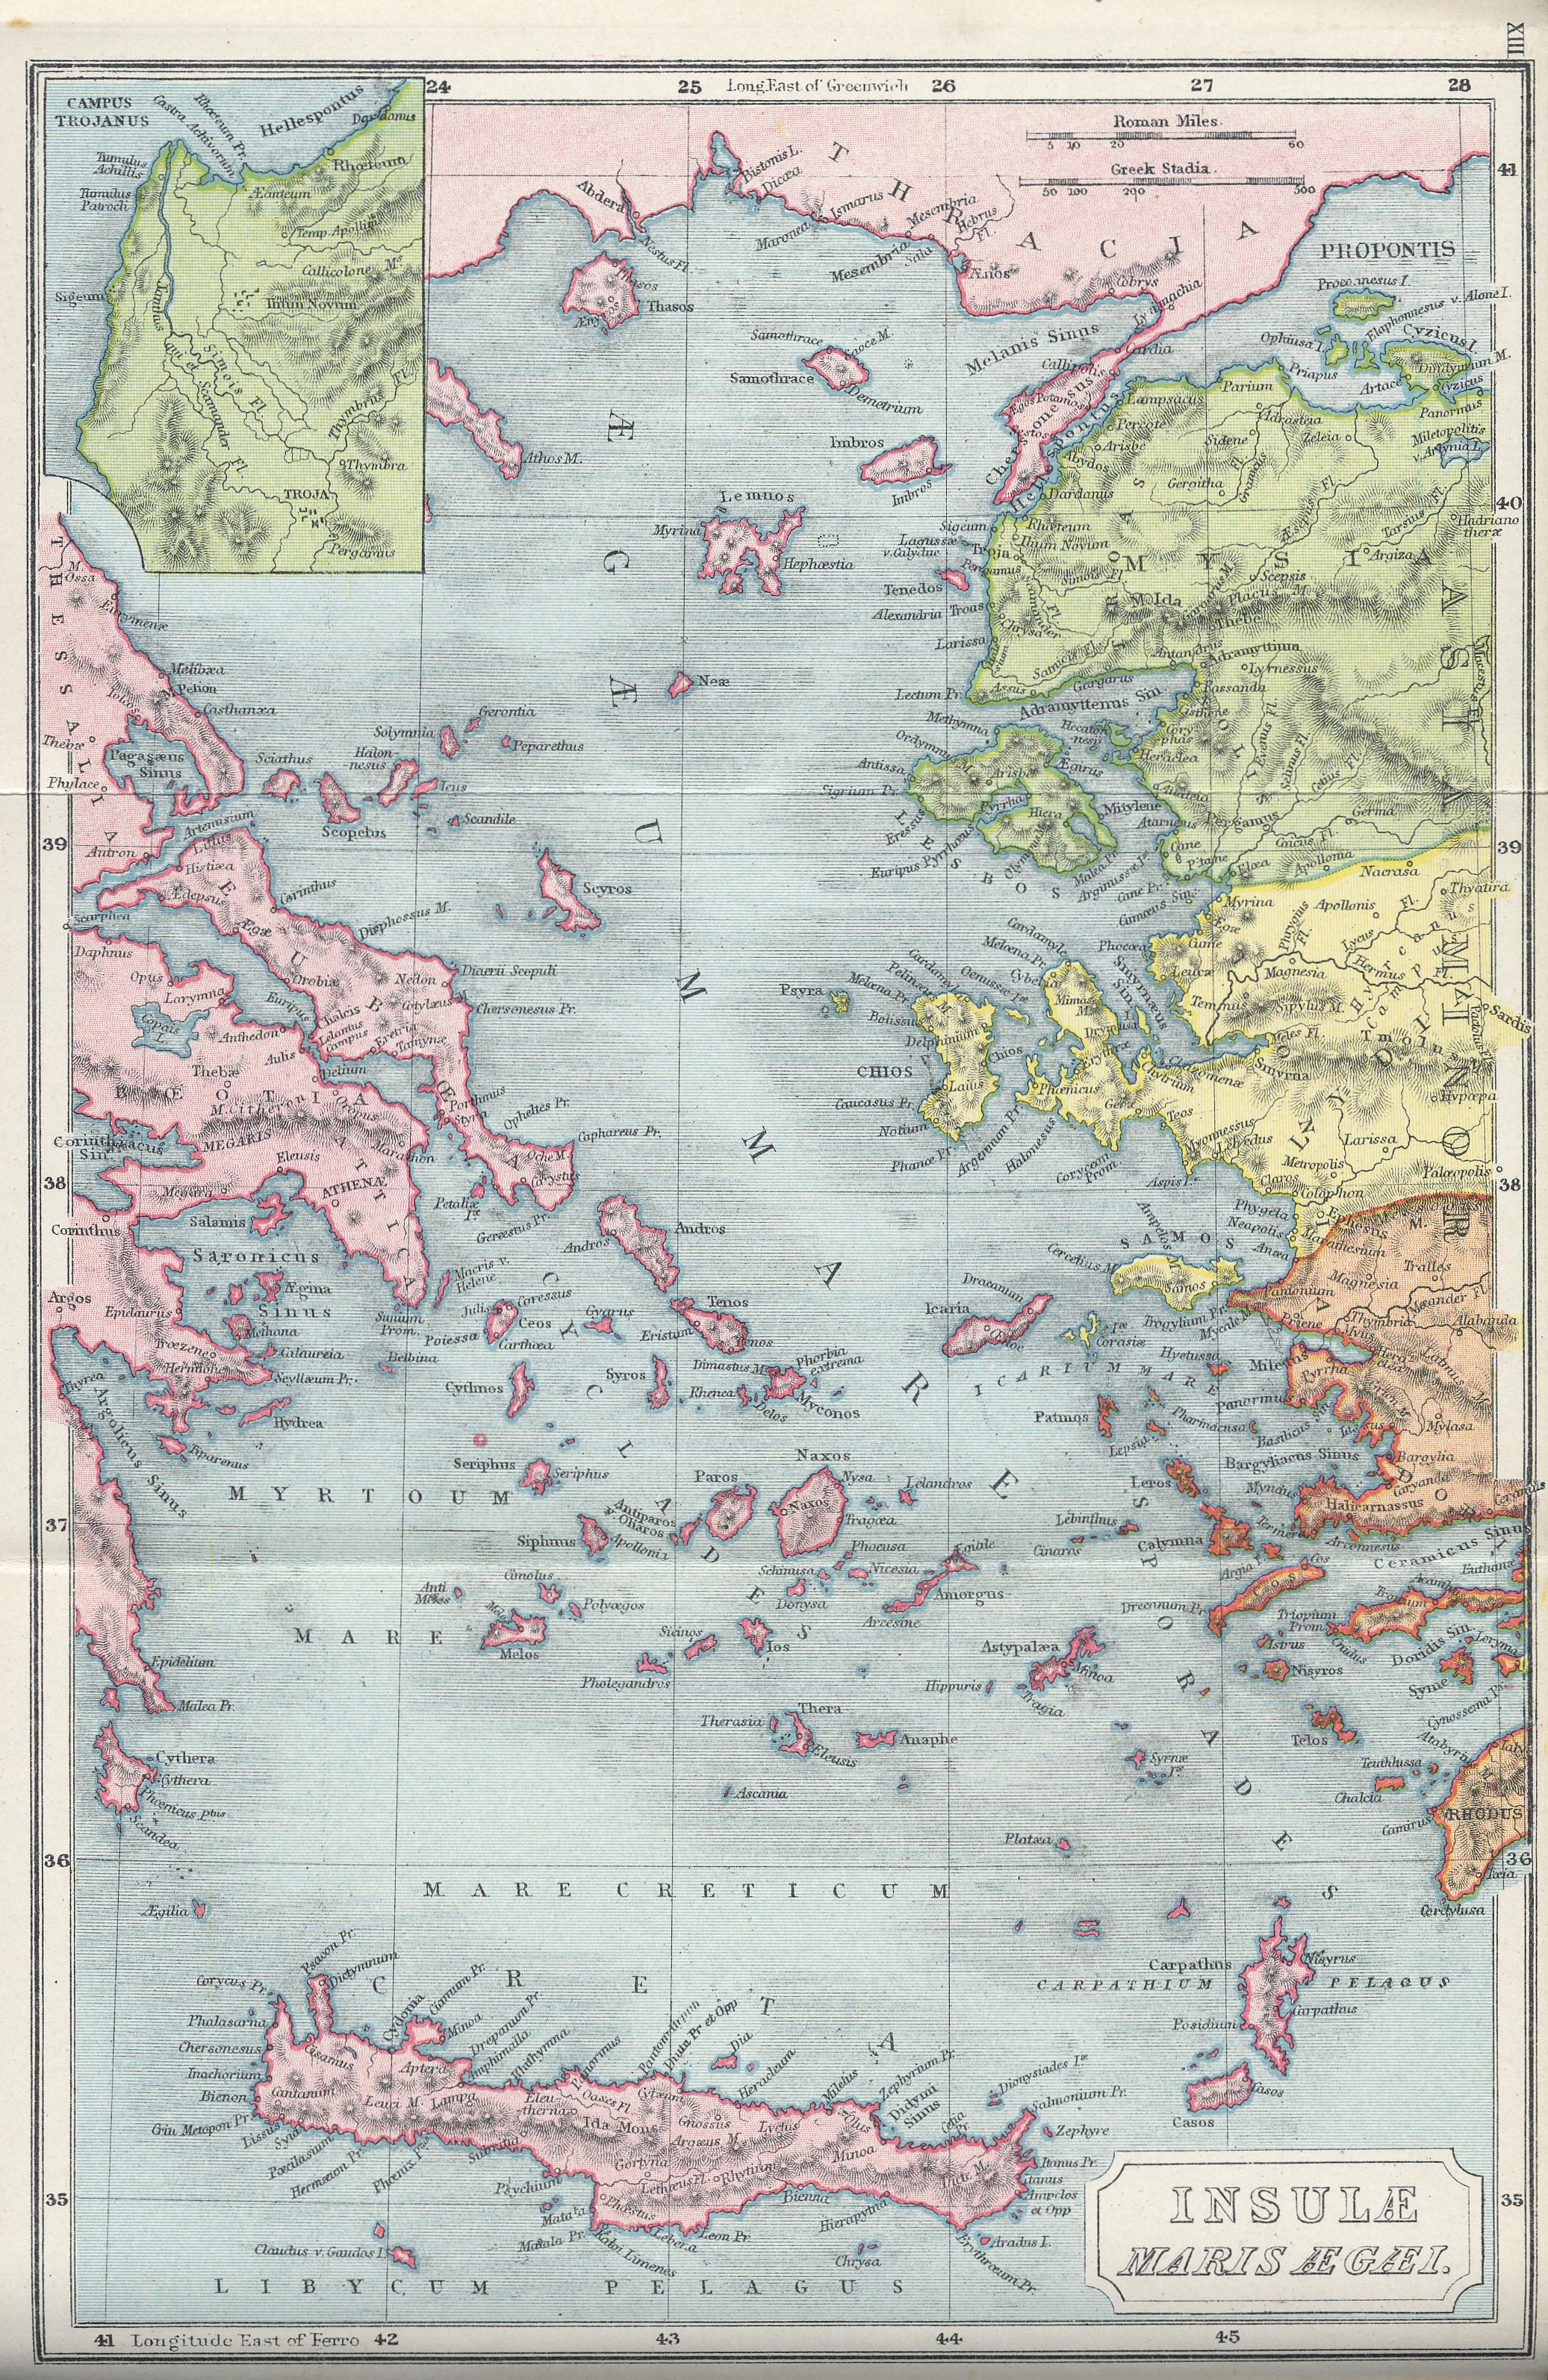 Map of Aegean Basin70 BC - AD 180